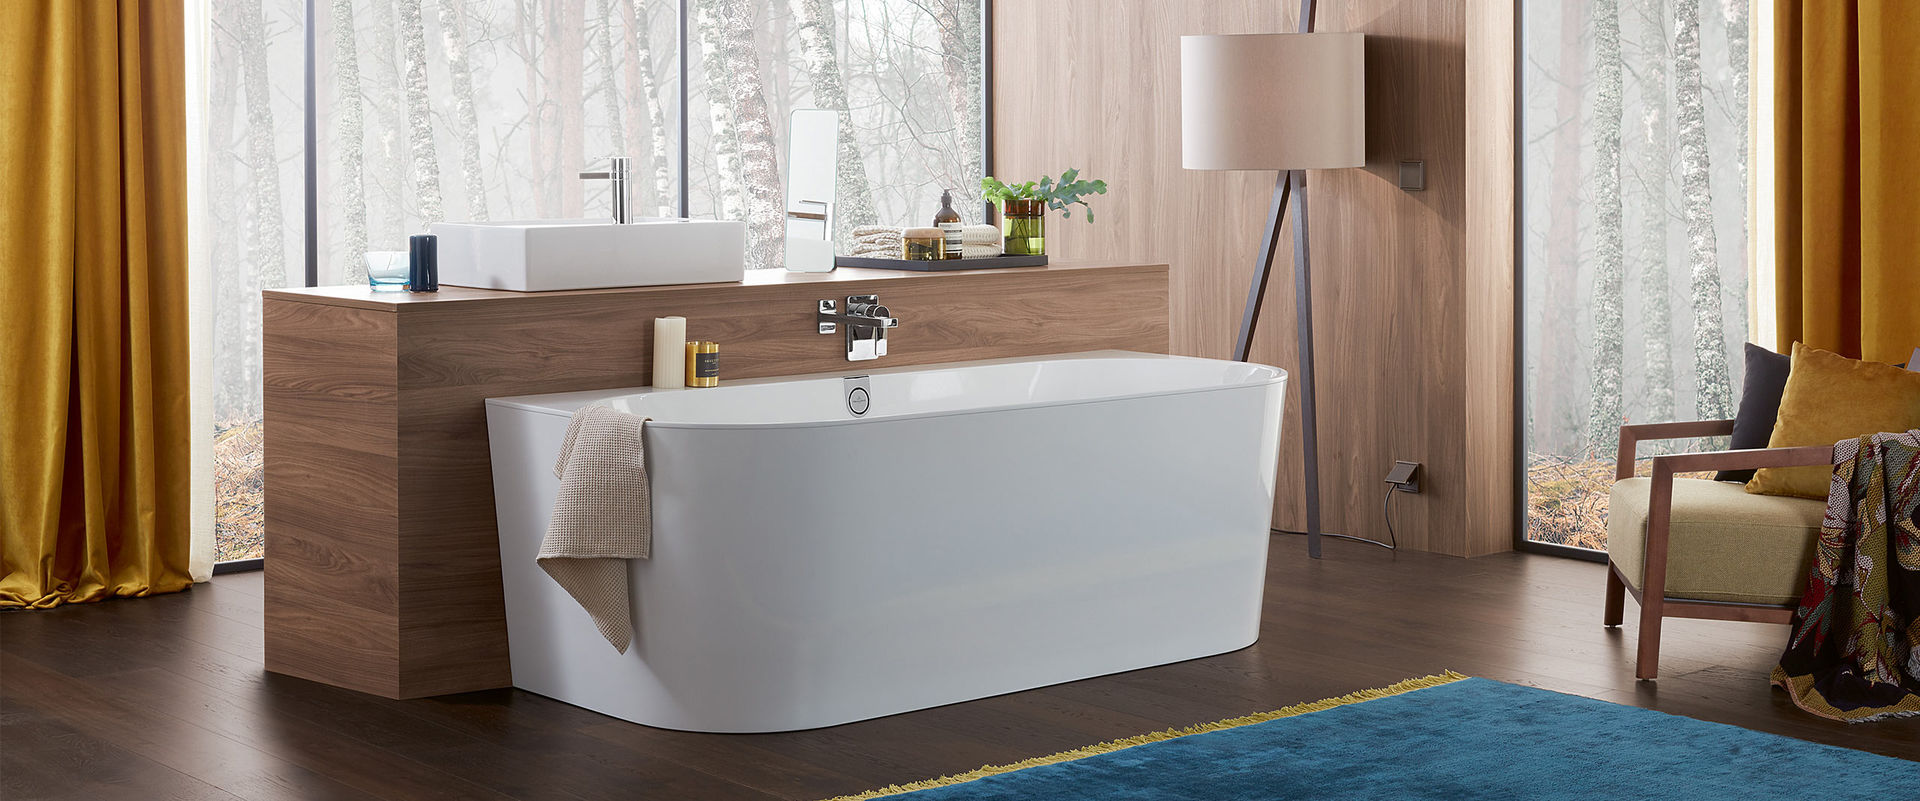 oberon 2 0 von villeroy boch badewanne mit update. Black Bedroom Furniture Sets. Home Design Ideas